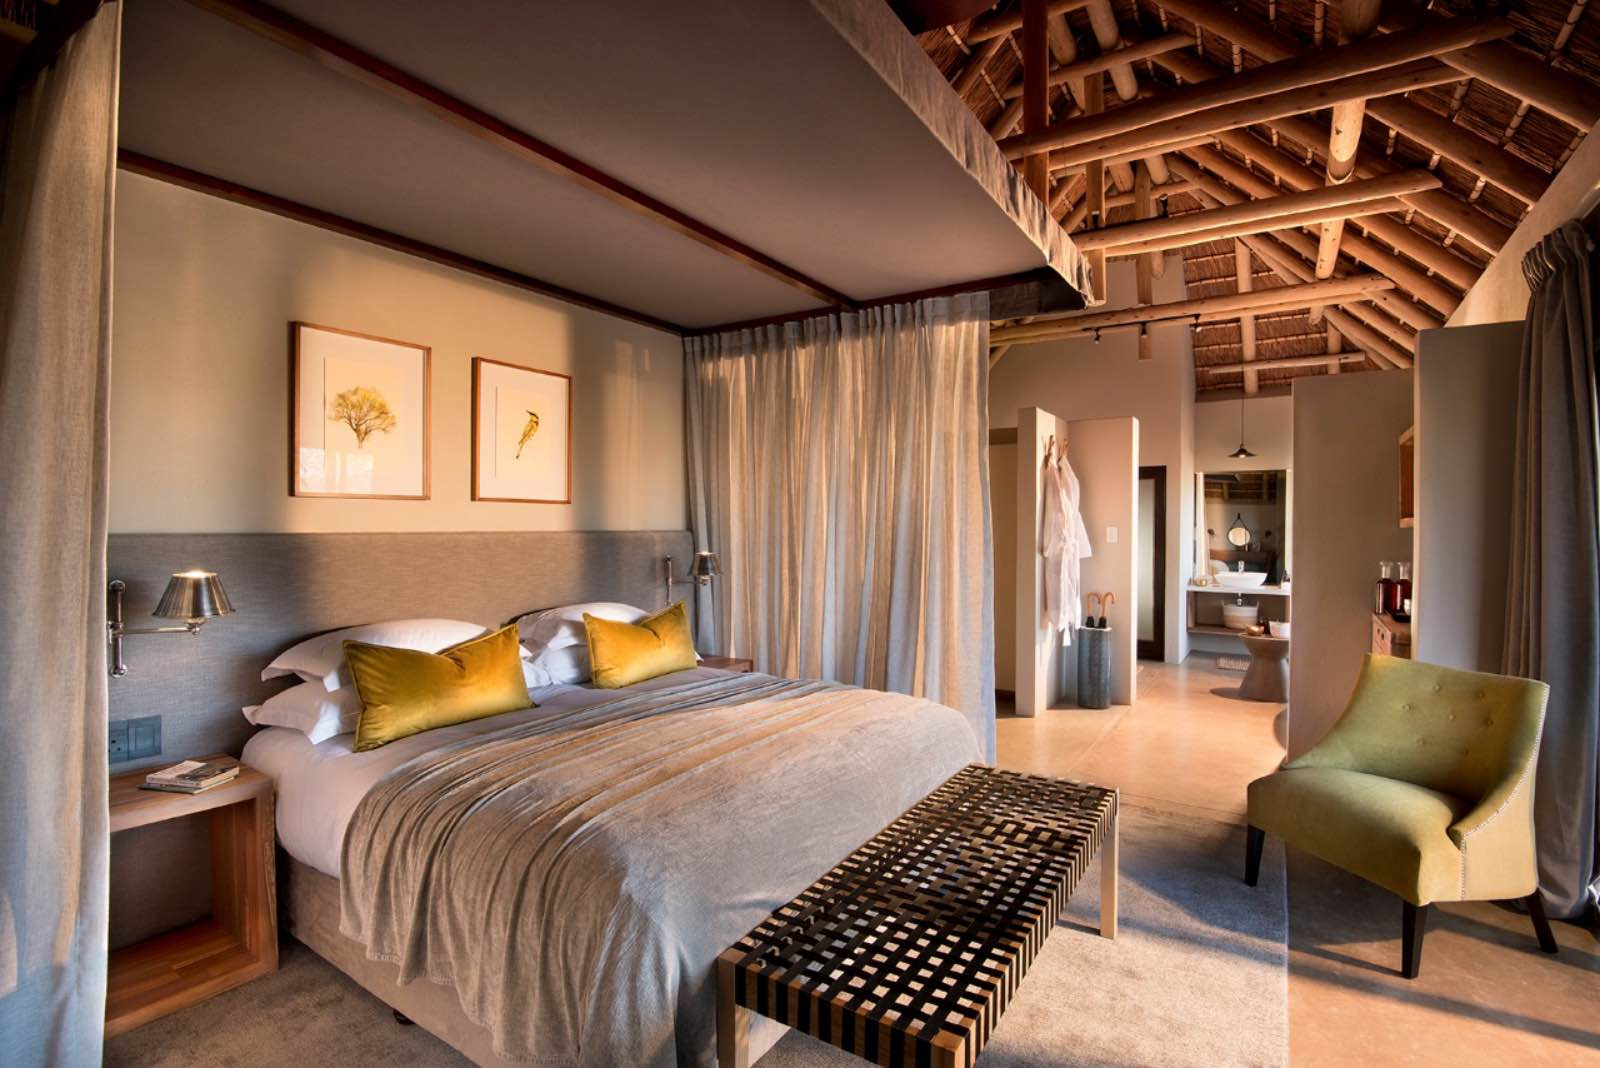 Bedroom suite interior with ensuite bathroom, all under thatch and wooden beams